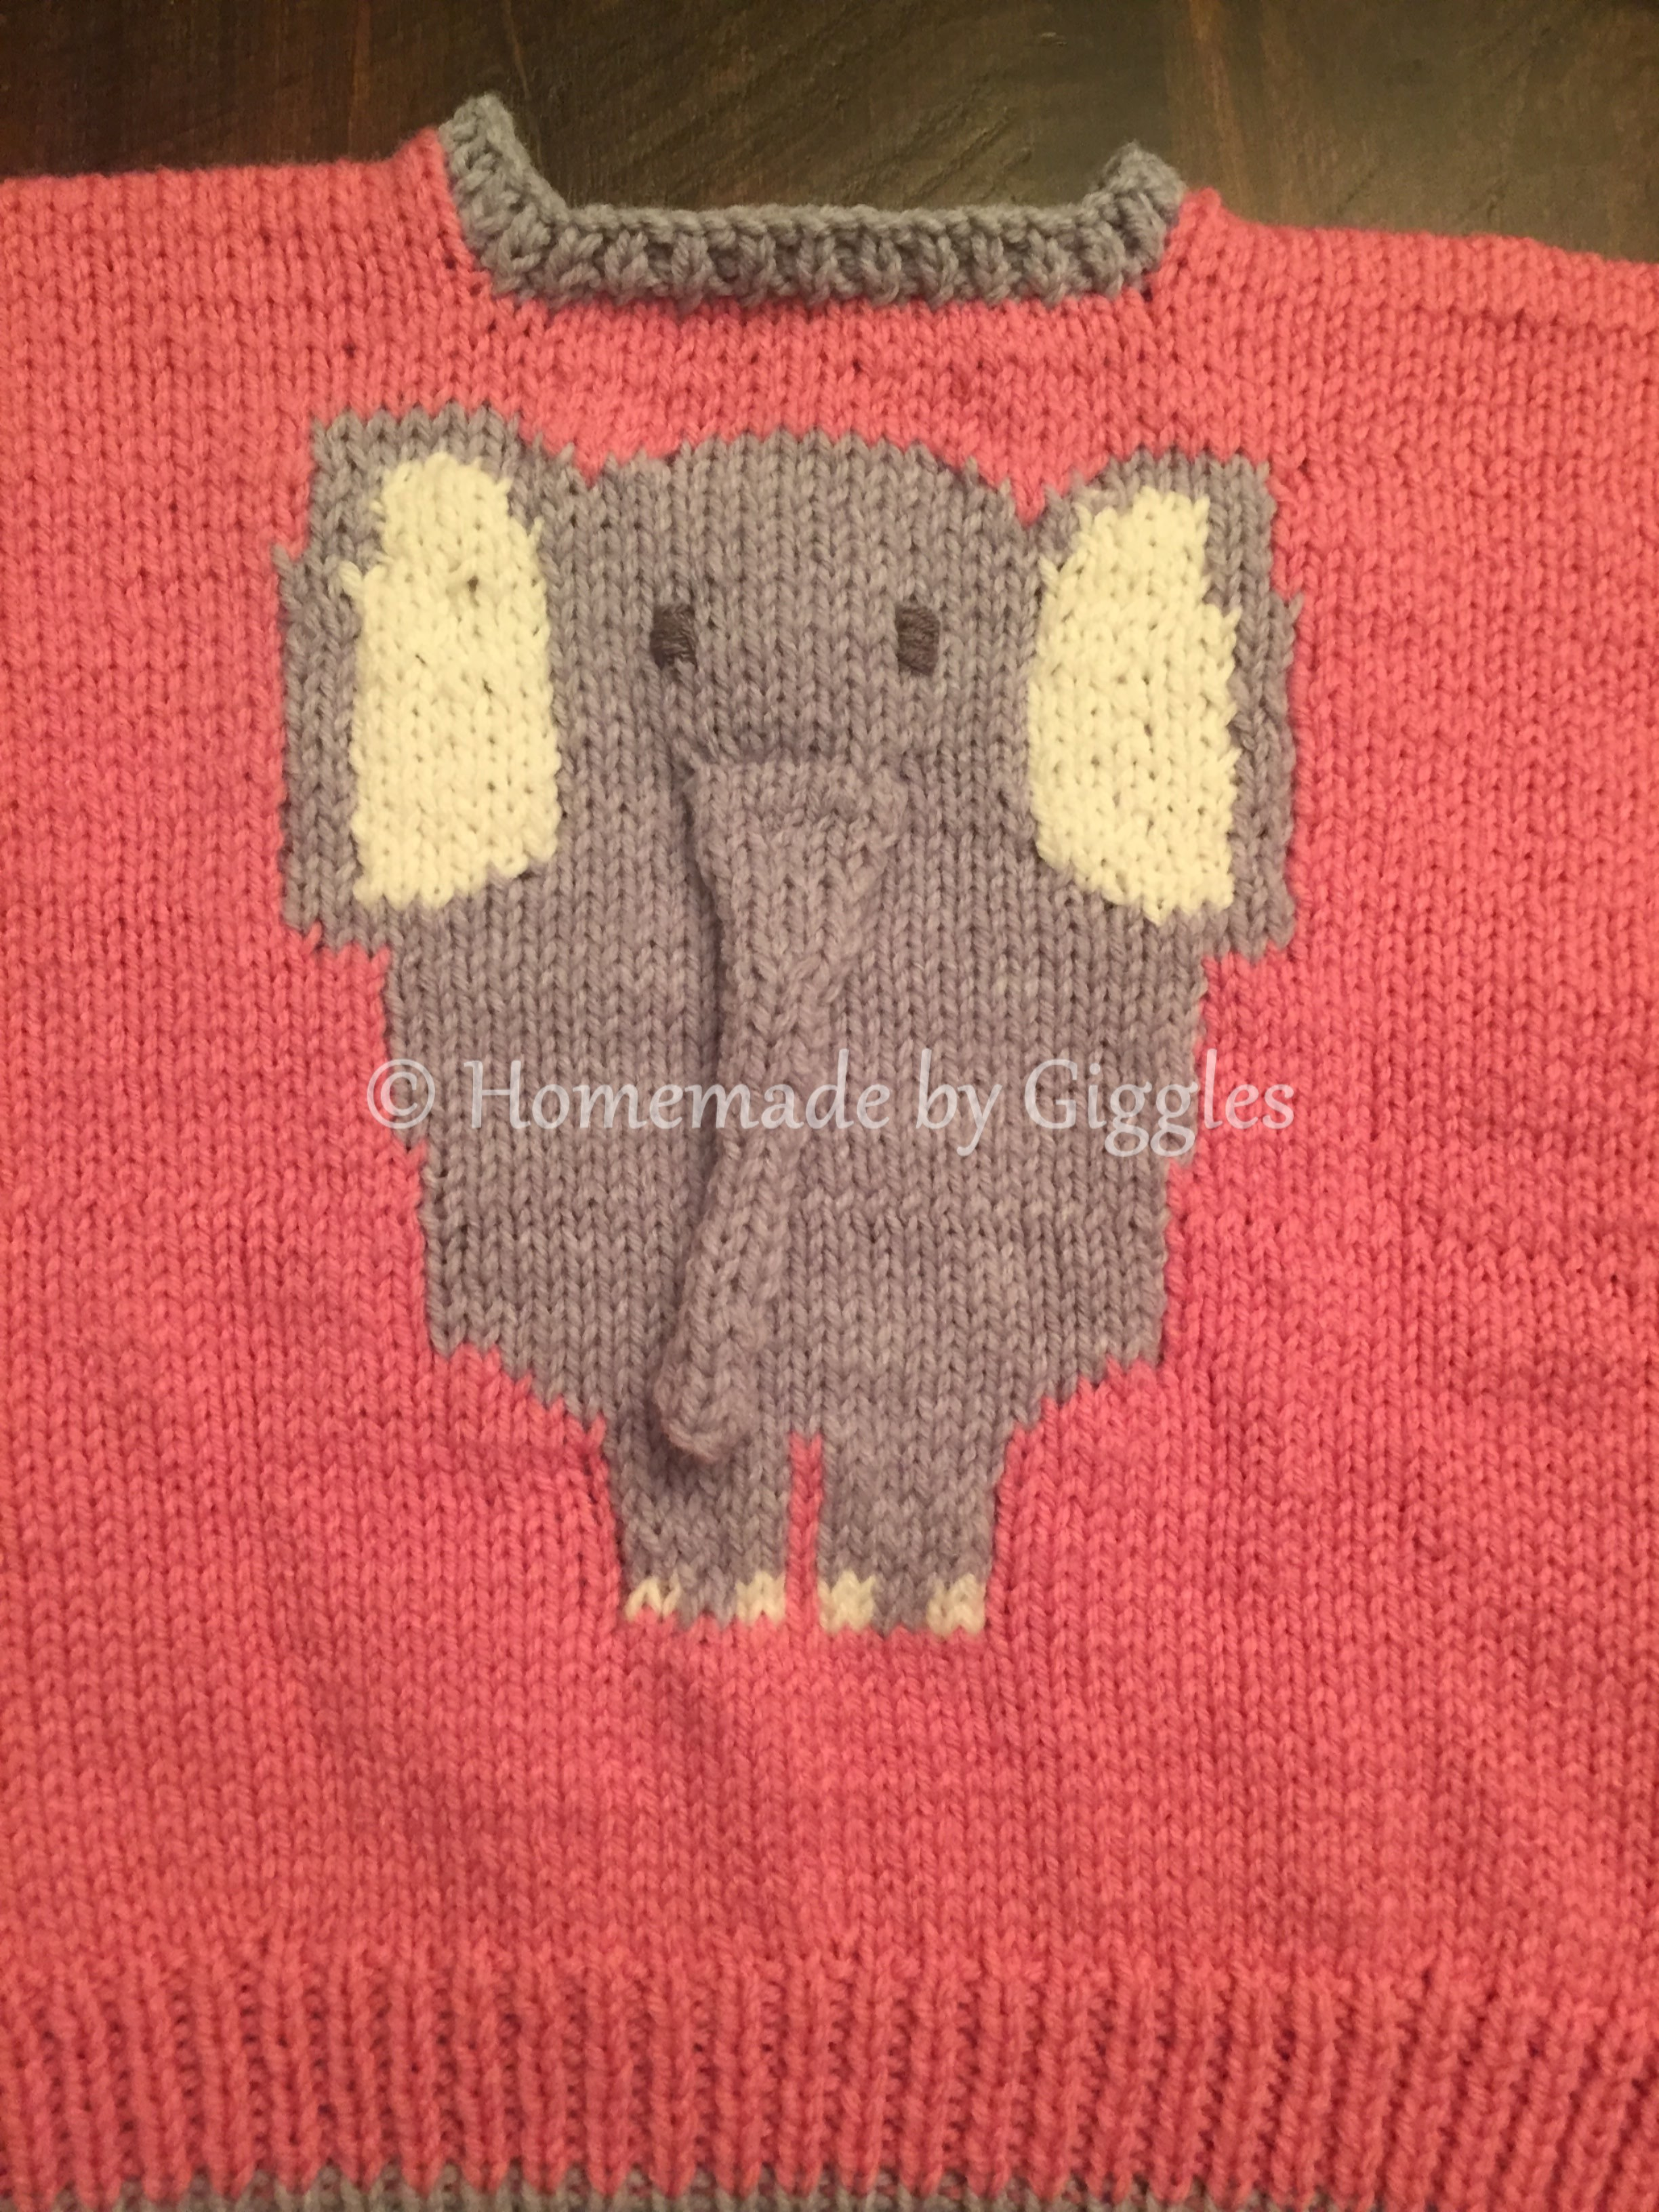 c4f1abe42fb6 Knit Elephant Sweater – Homemade by Giggles